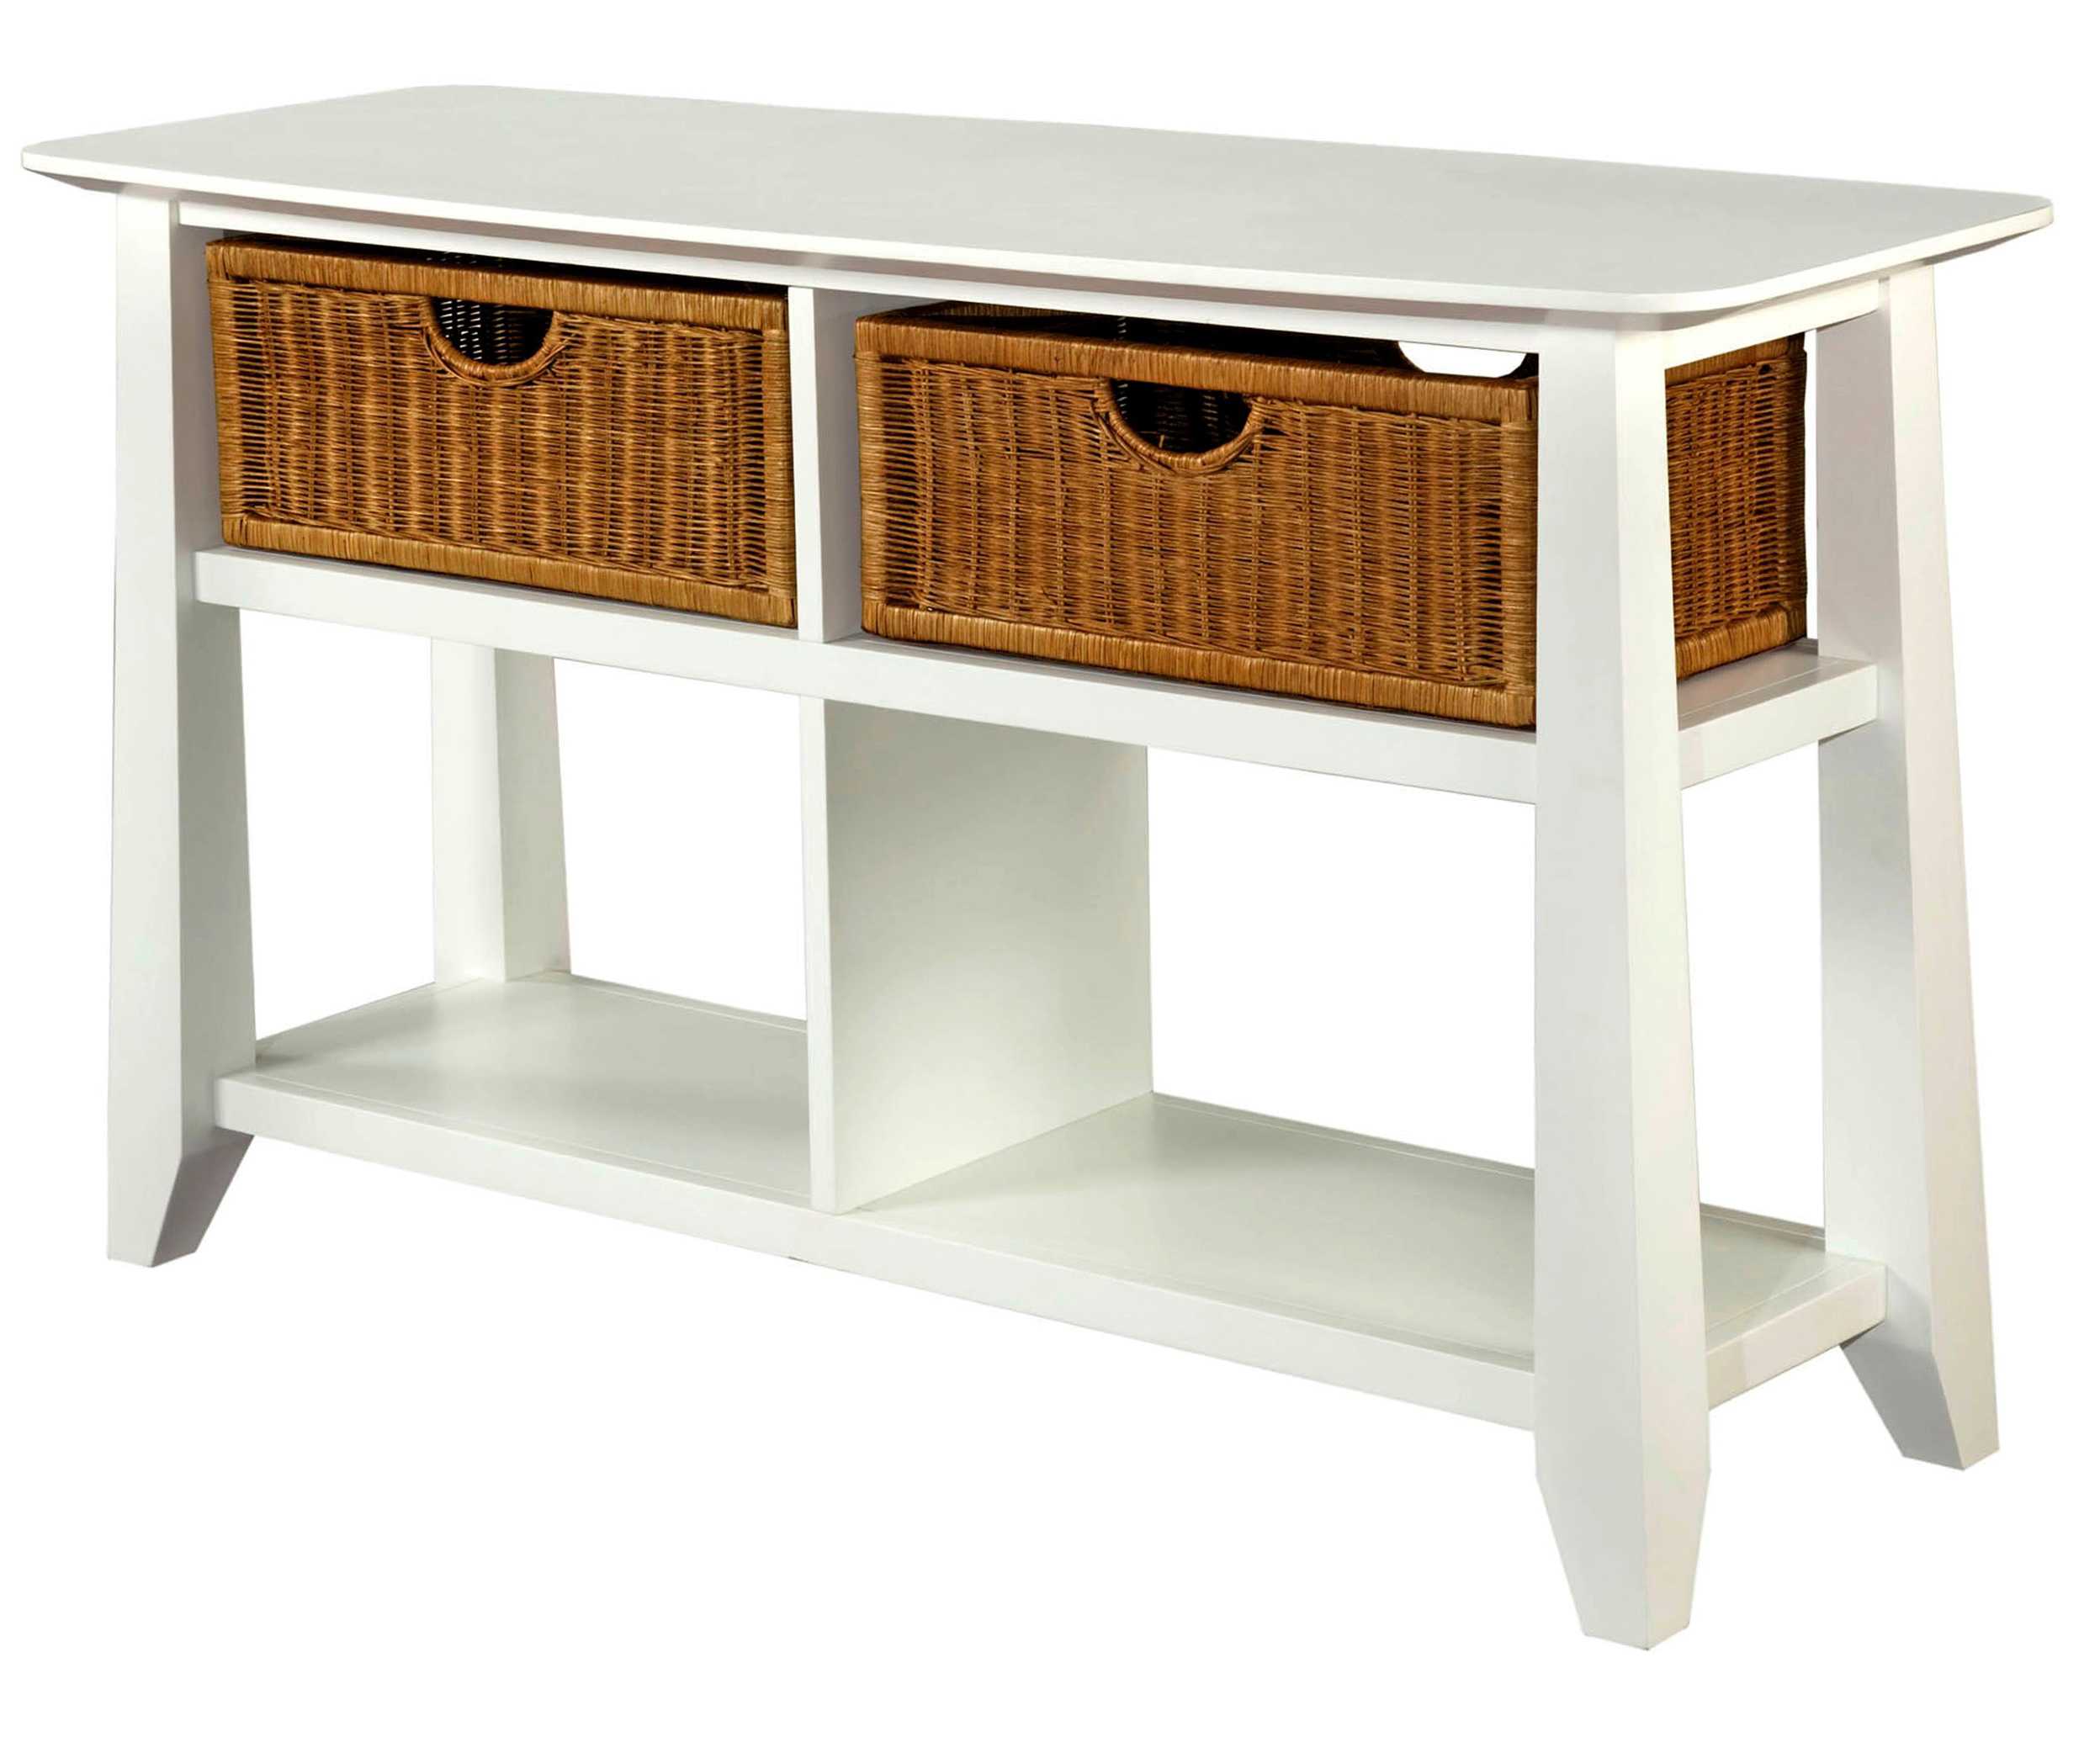 White Sofa Table With Baskets